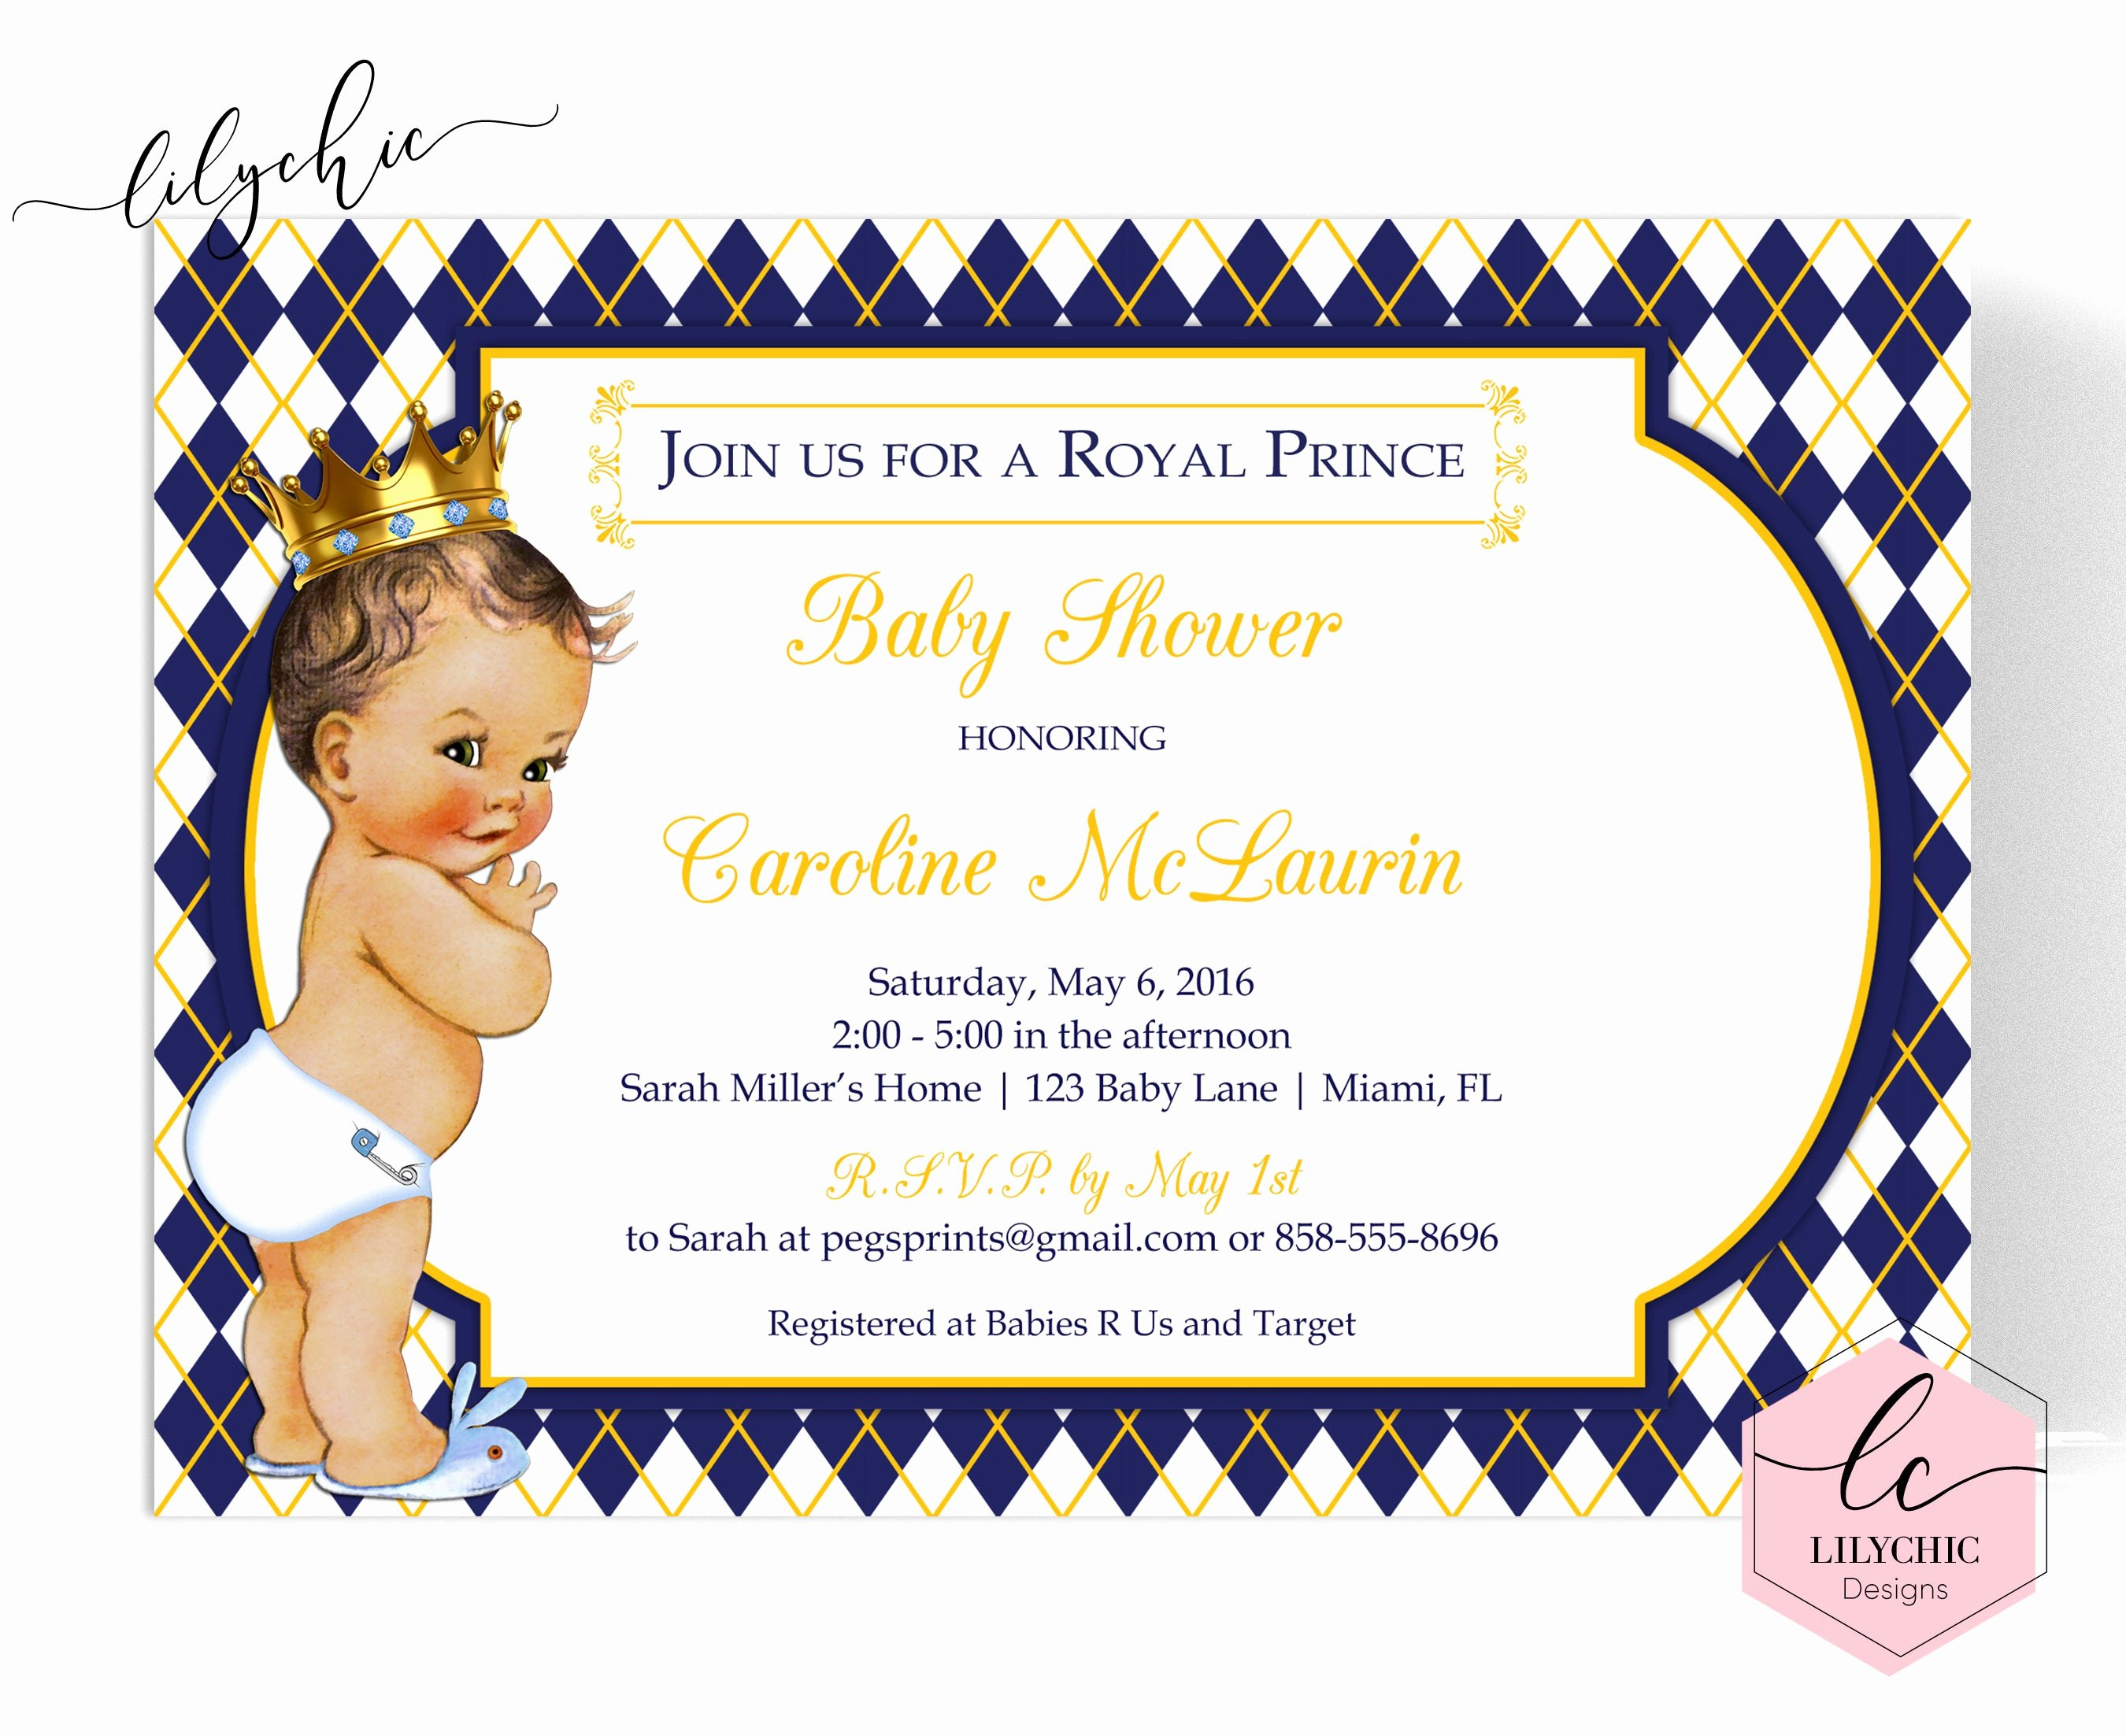 Royal Baby Shower Invitations Inspirational Royal Prince Baby Shower Invitation Royal Baby Shower